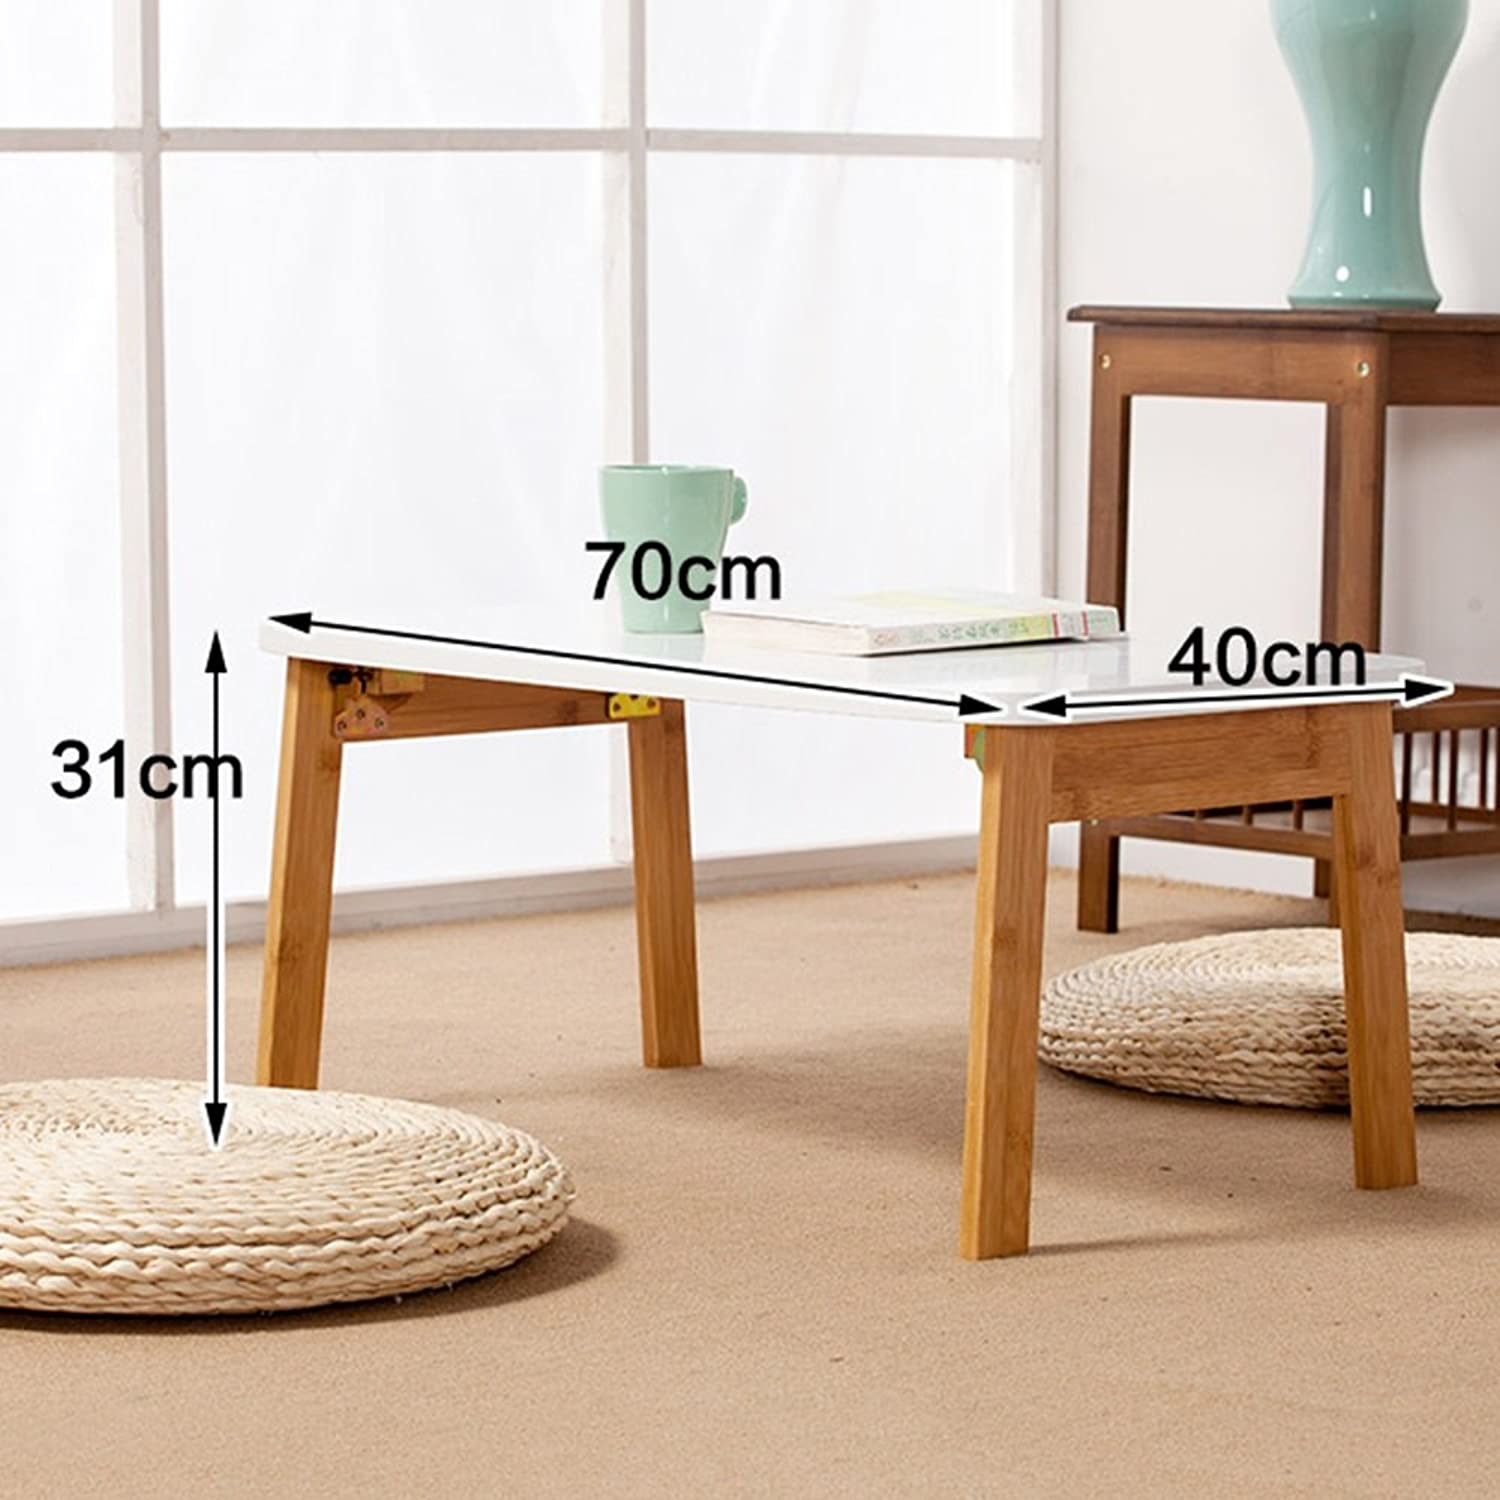 Xiaomei Nanzhu Laptop Desk Bed Foldable Table Floating Window Small Table Lazy Desk Study Writing Desk (color   Natural Wood, Size   70)